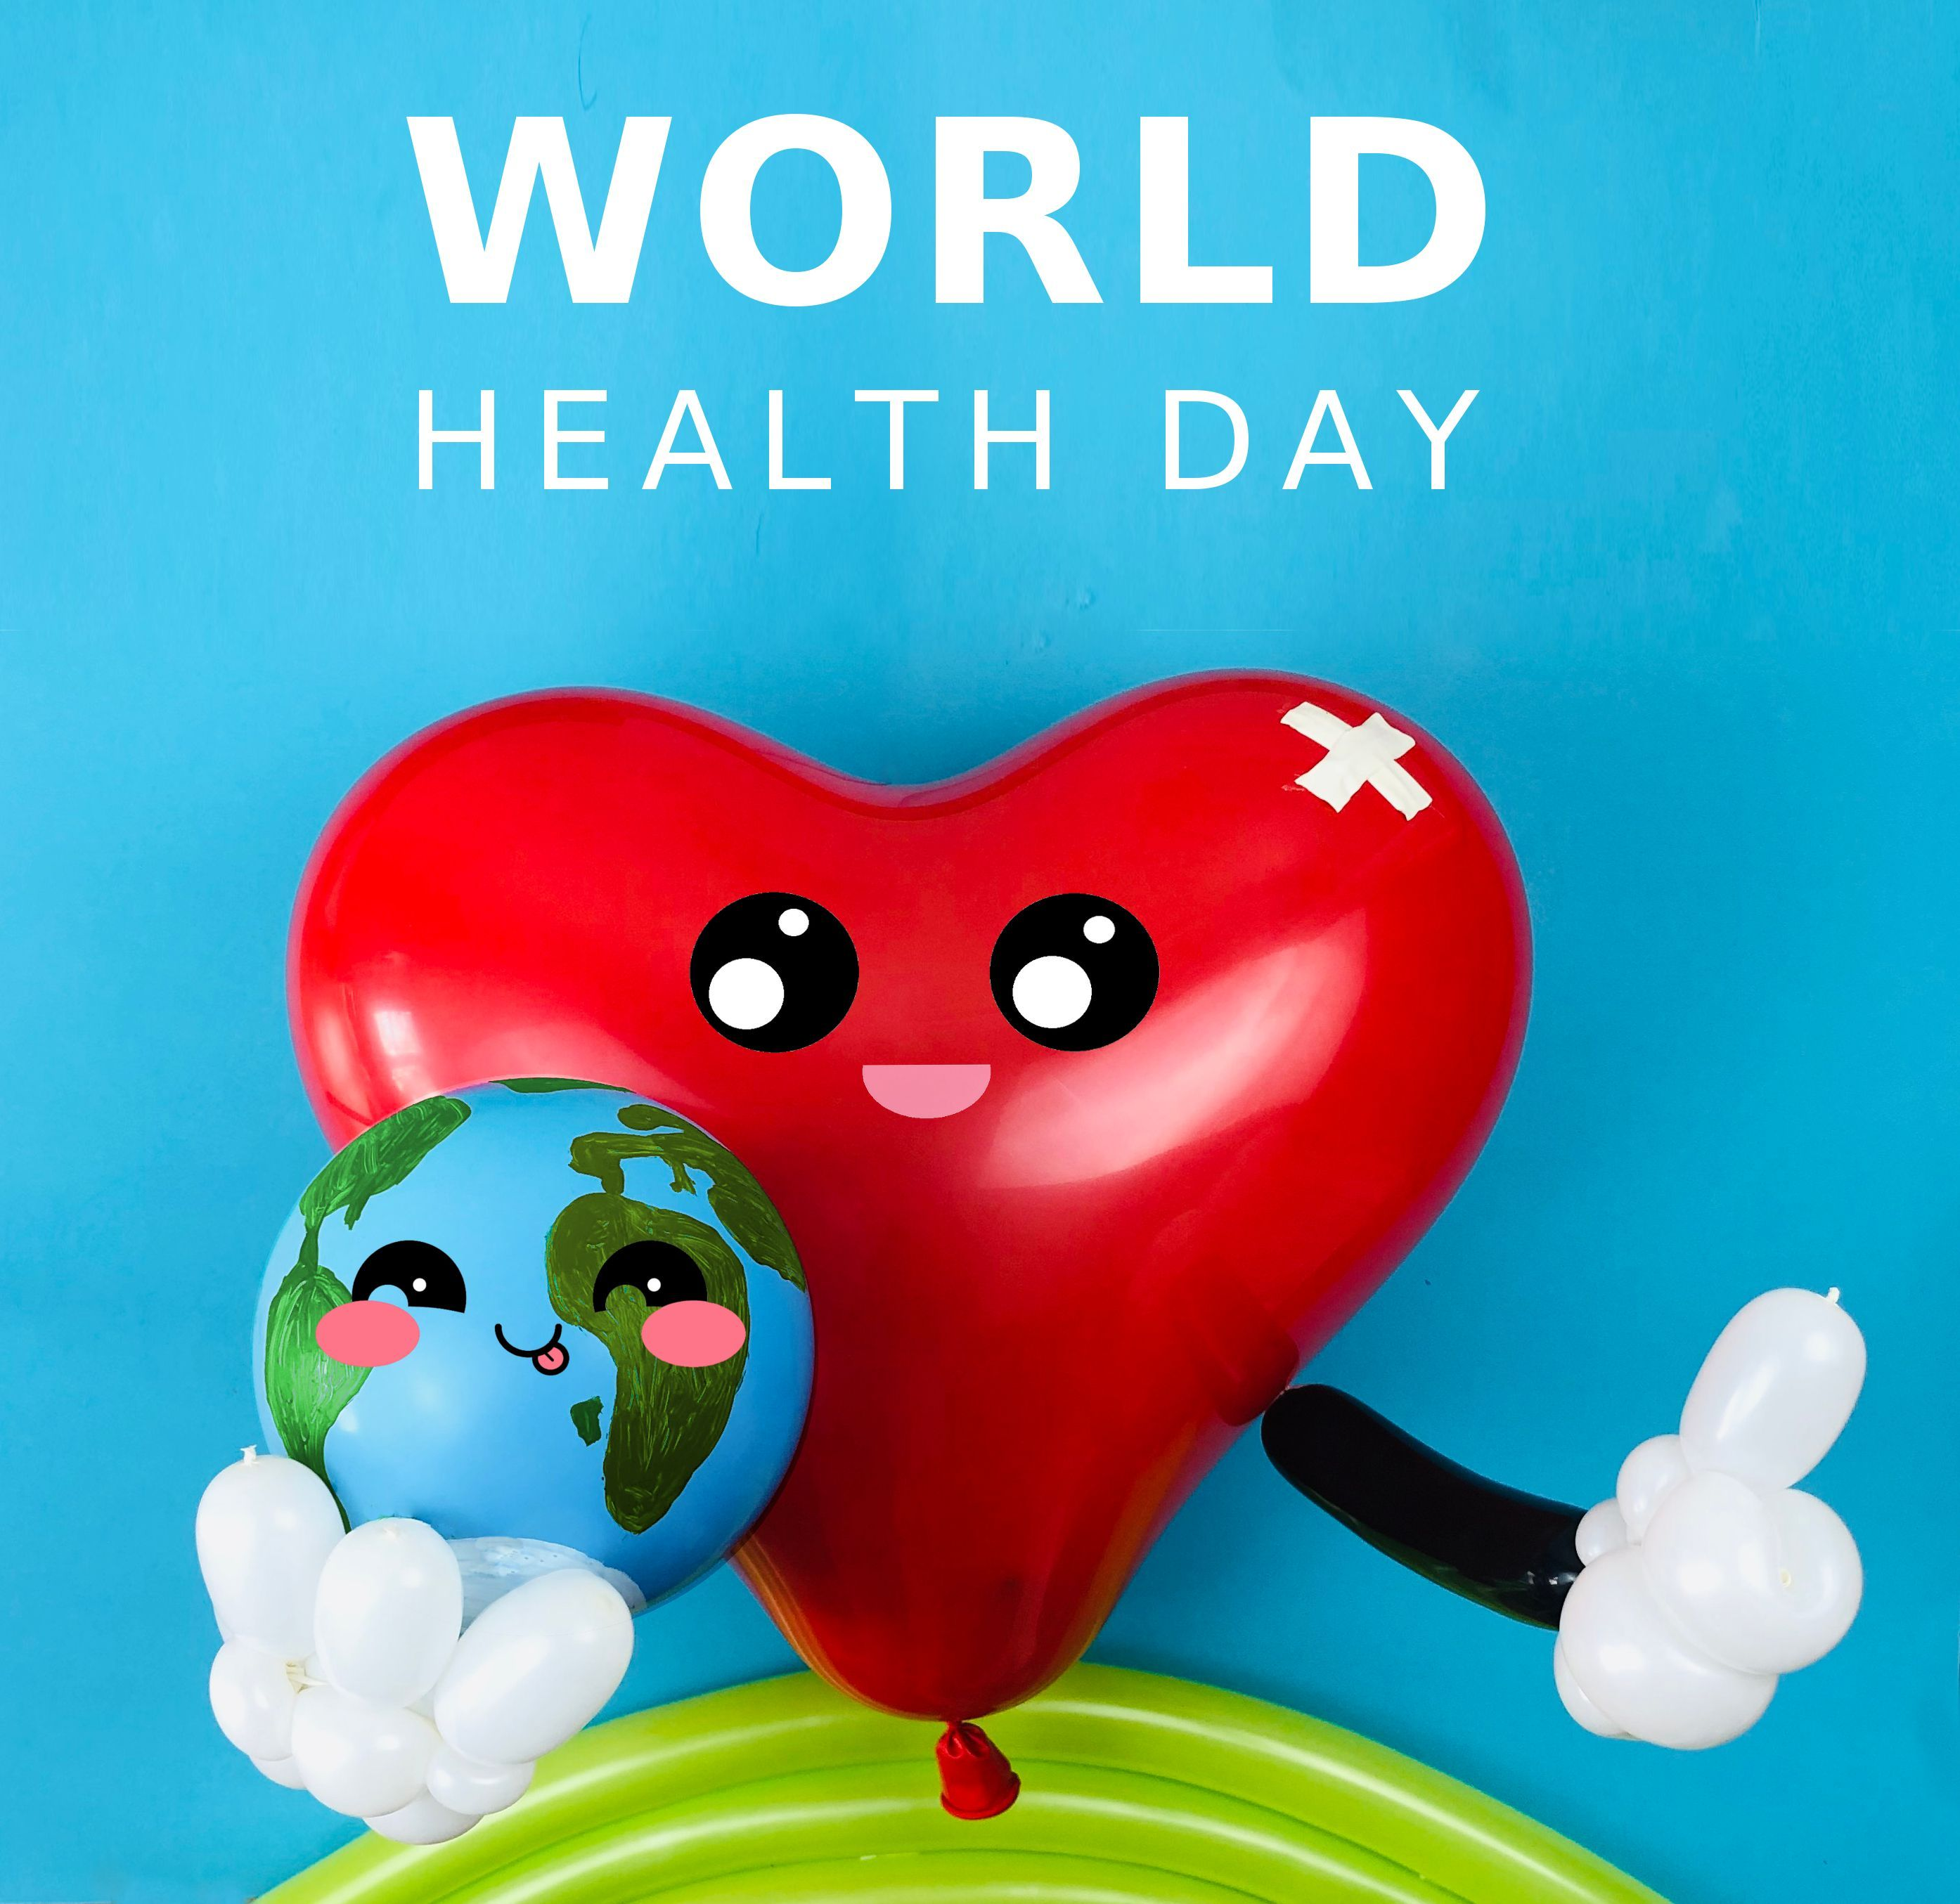 World Health Day is celebrated on 7 April as World Health